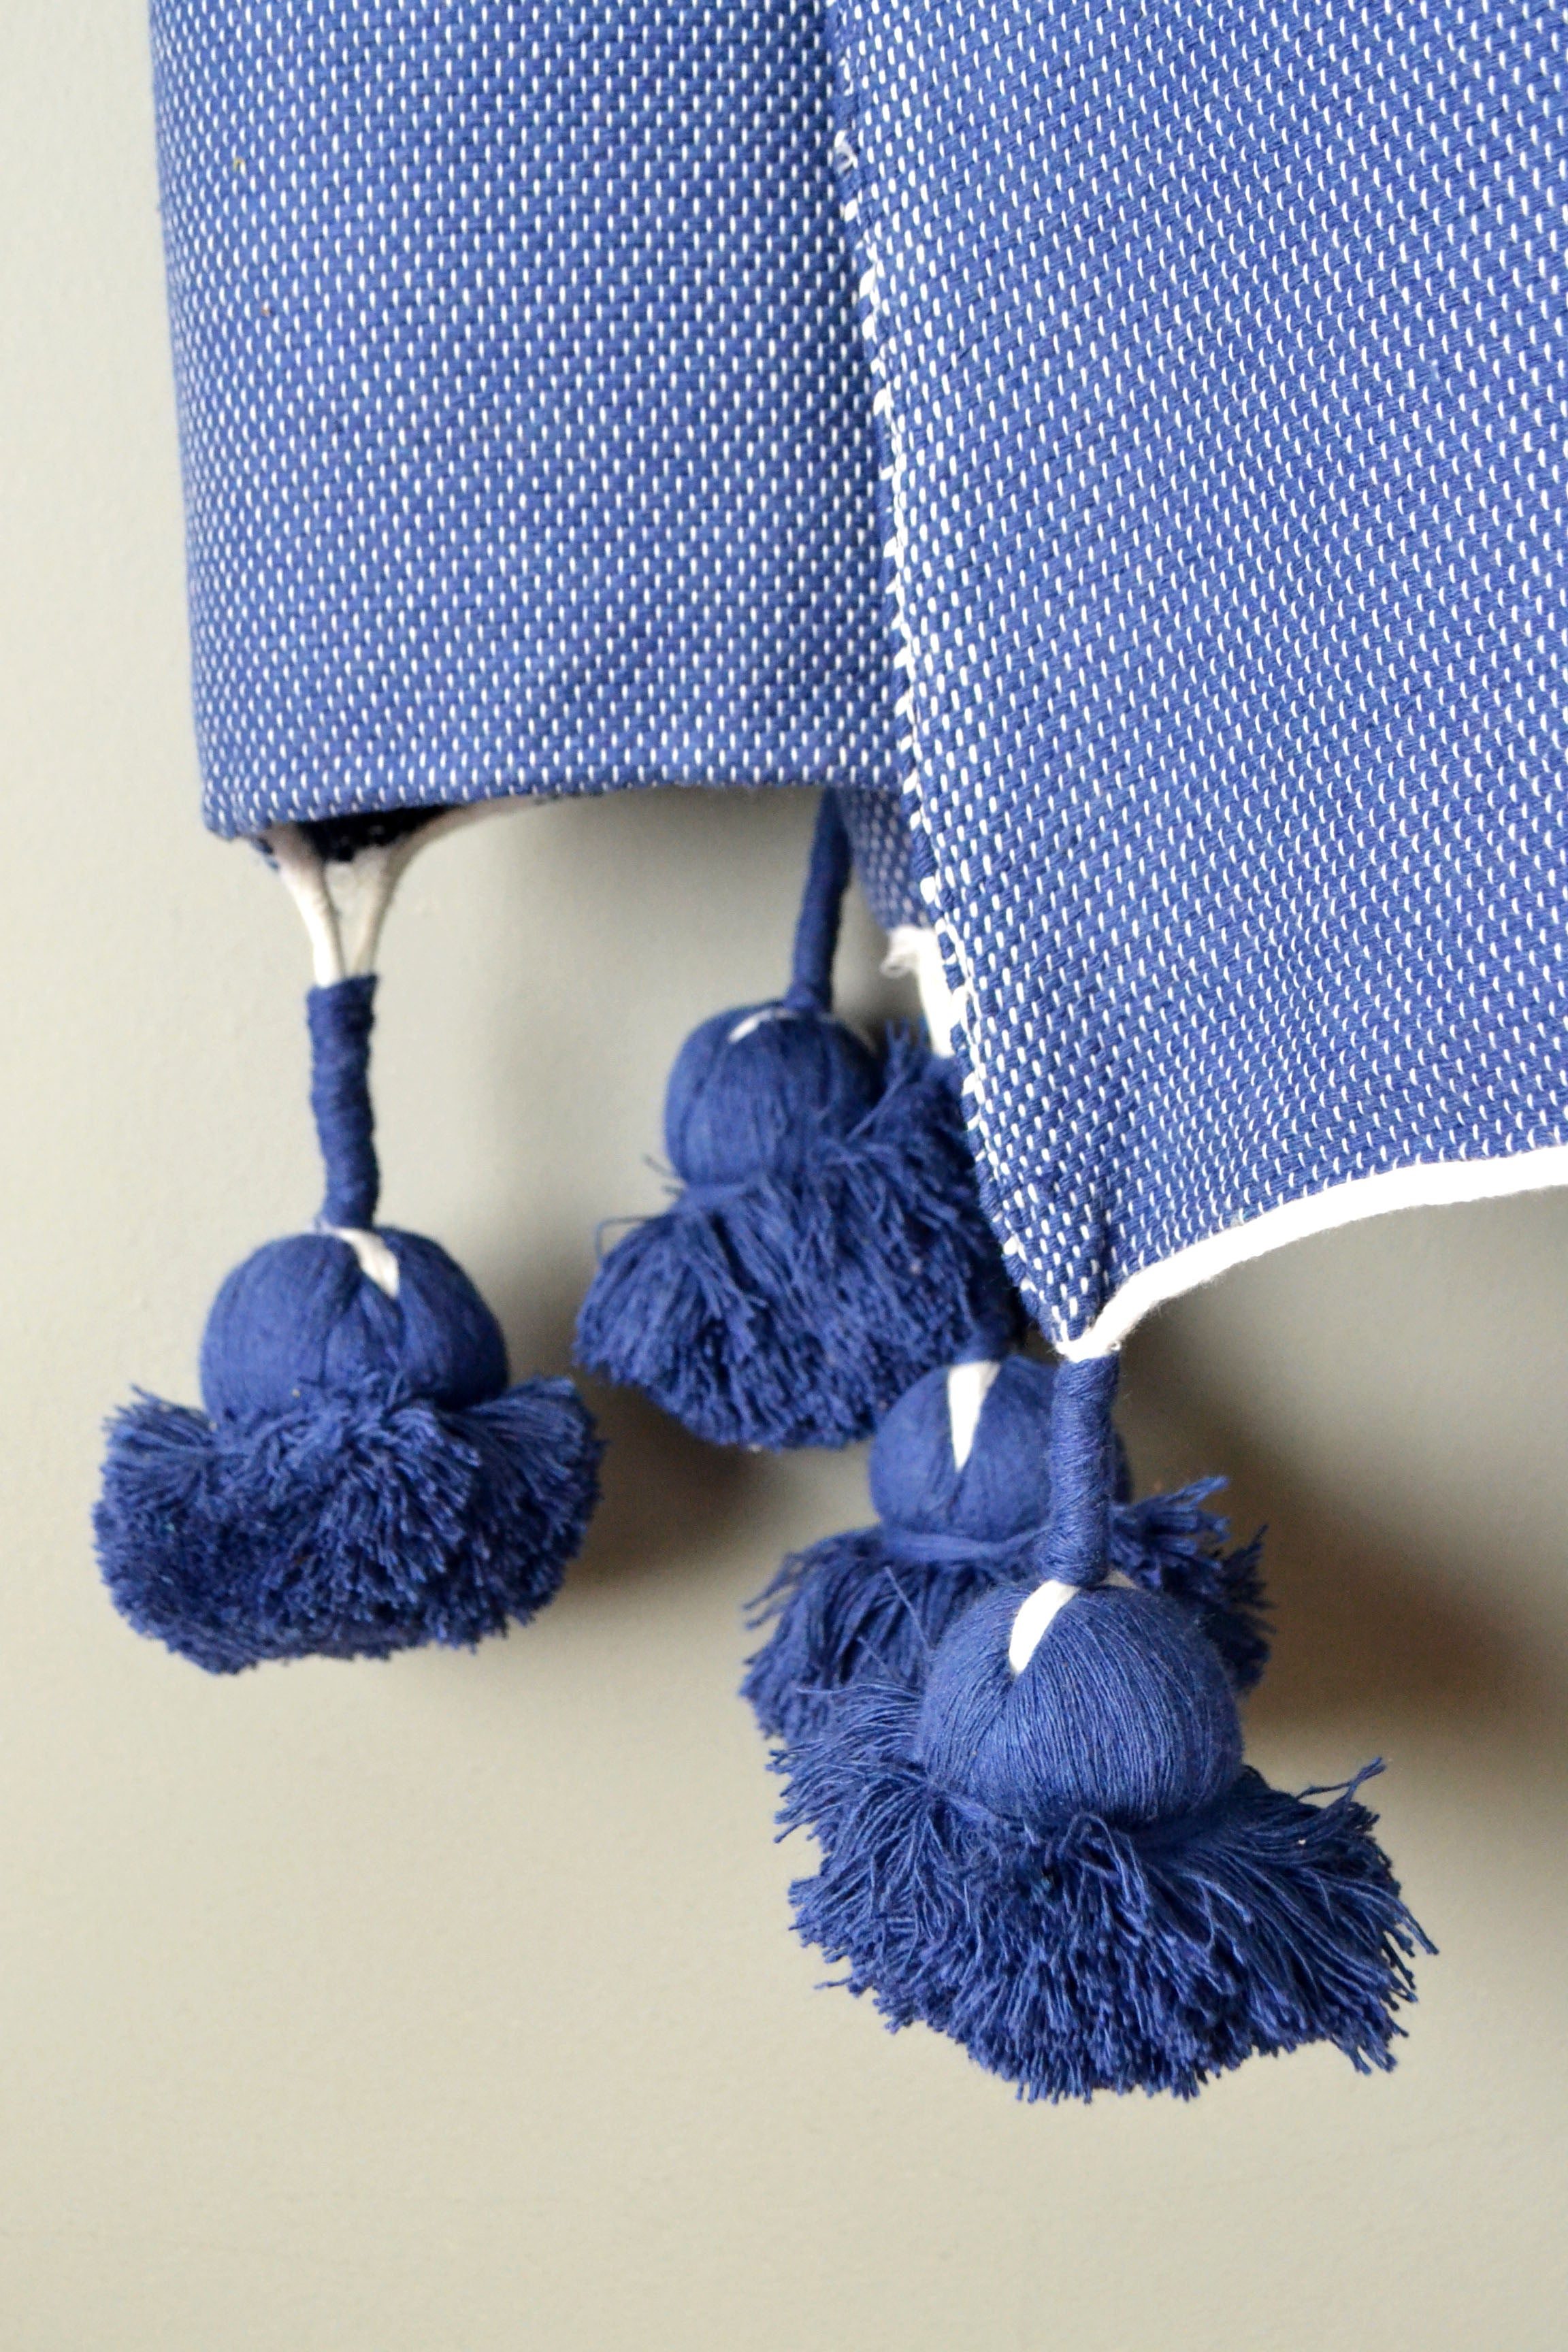 Navy Cotton Pom Pom Throw Blanket from Yuba Mercantile